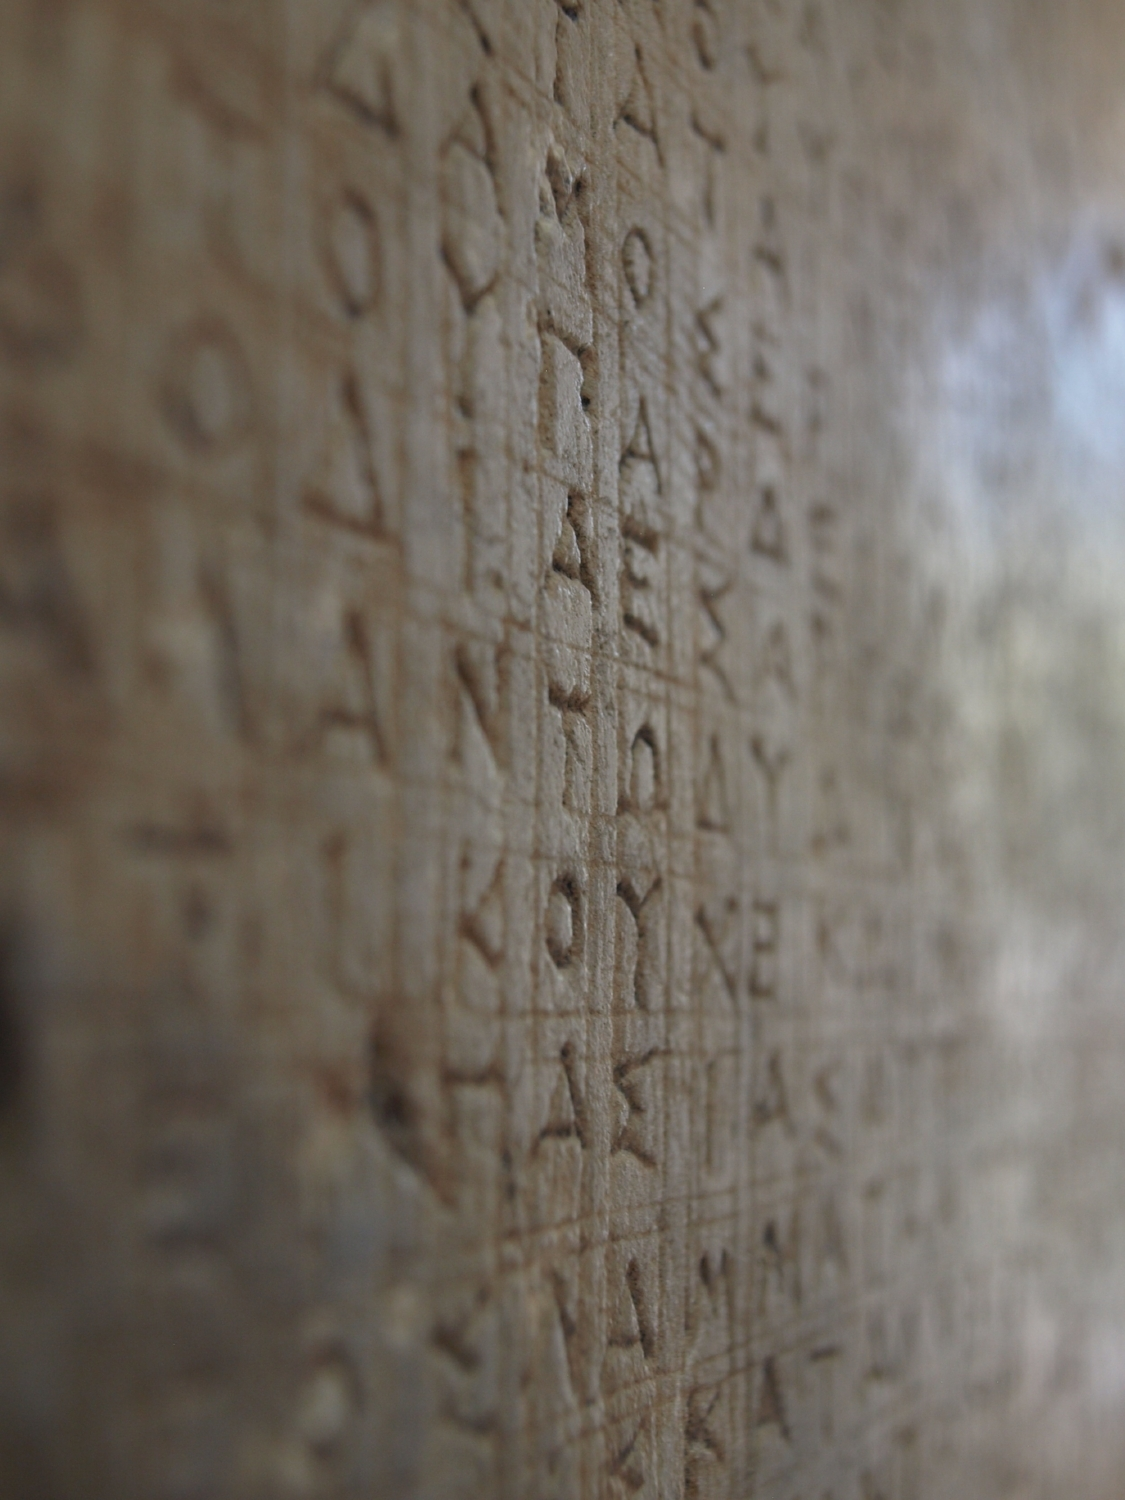 The Greek Alphabet in its original (all capital letters!) form (Picture by Katherine Poseidon)